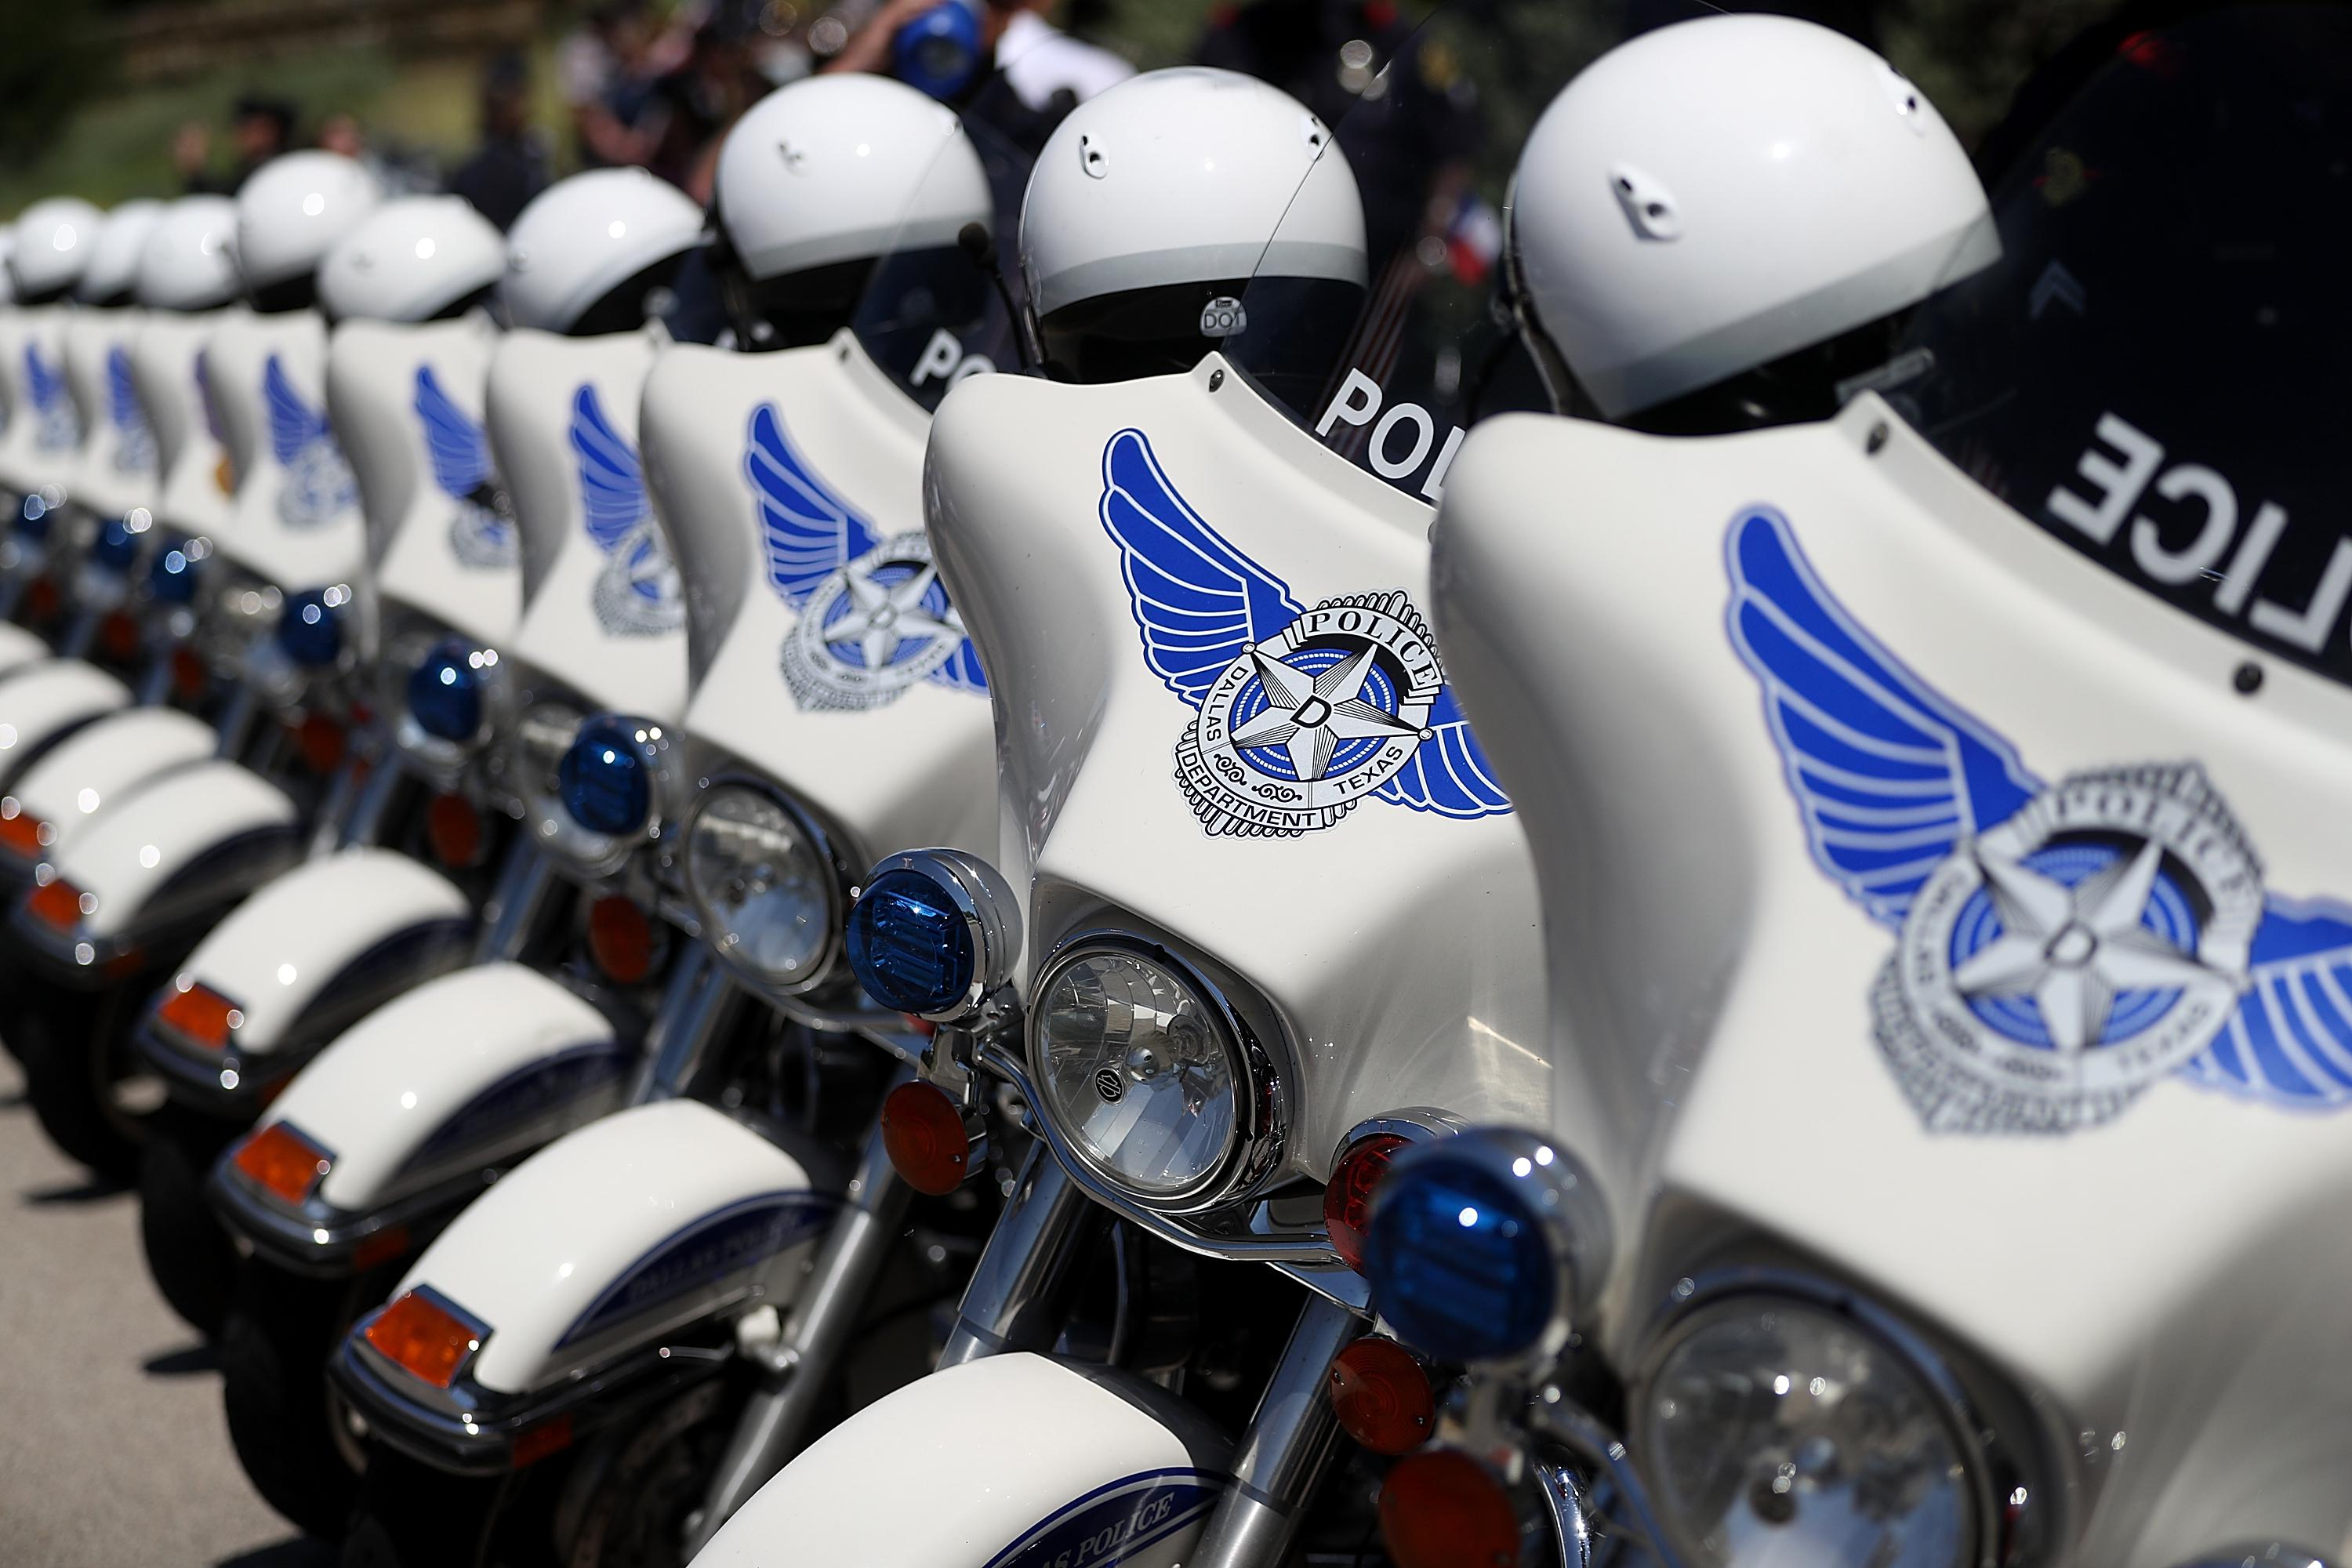 Dallas police motorcycles line up outside of the funeral for slain Dallas police Sgt. Michael Smith at The Watermark Church on July 14, 2016 in Dallas, Texas.